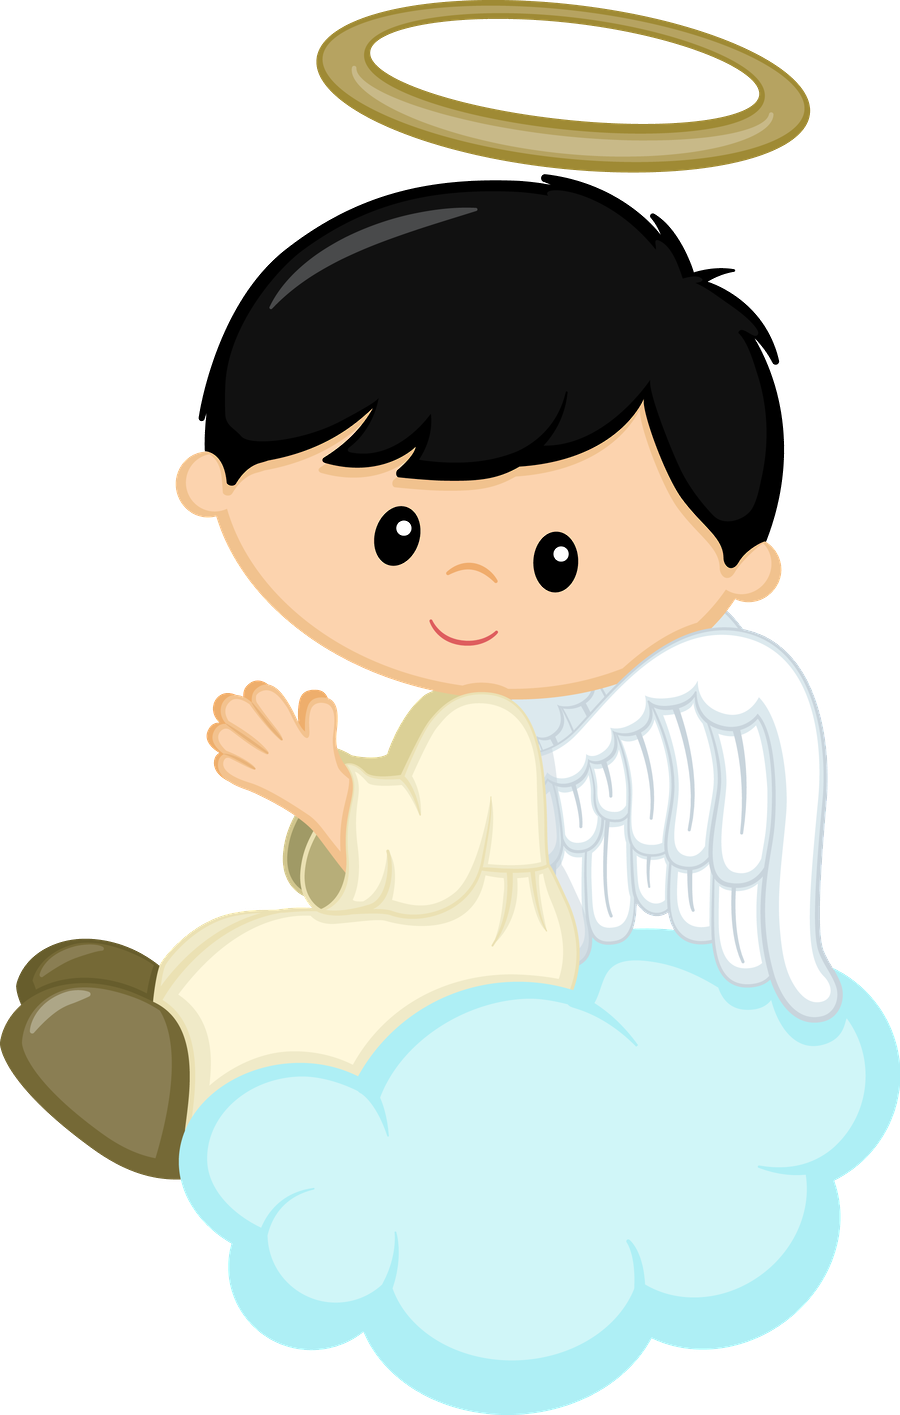 Angel clipart christmas picture freeuse stock Pin by Jeny Chique on Bautizo para Niños | Pinterest picture freeuse stock